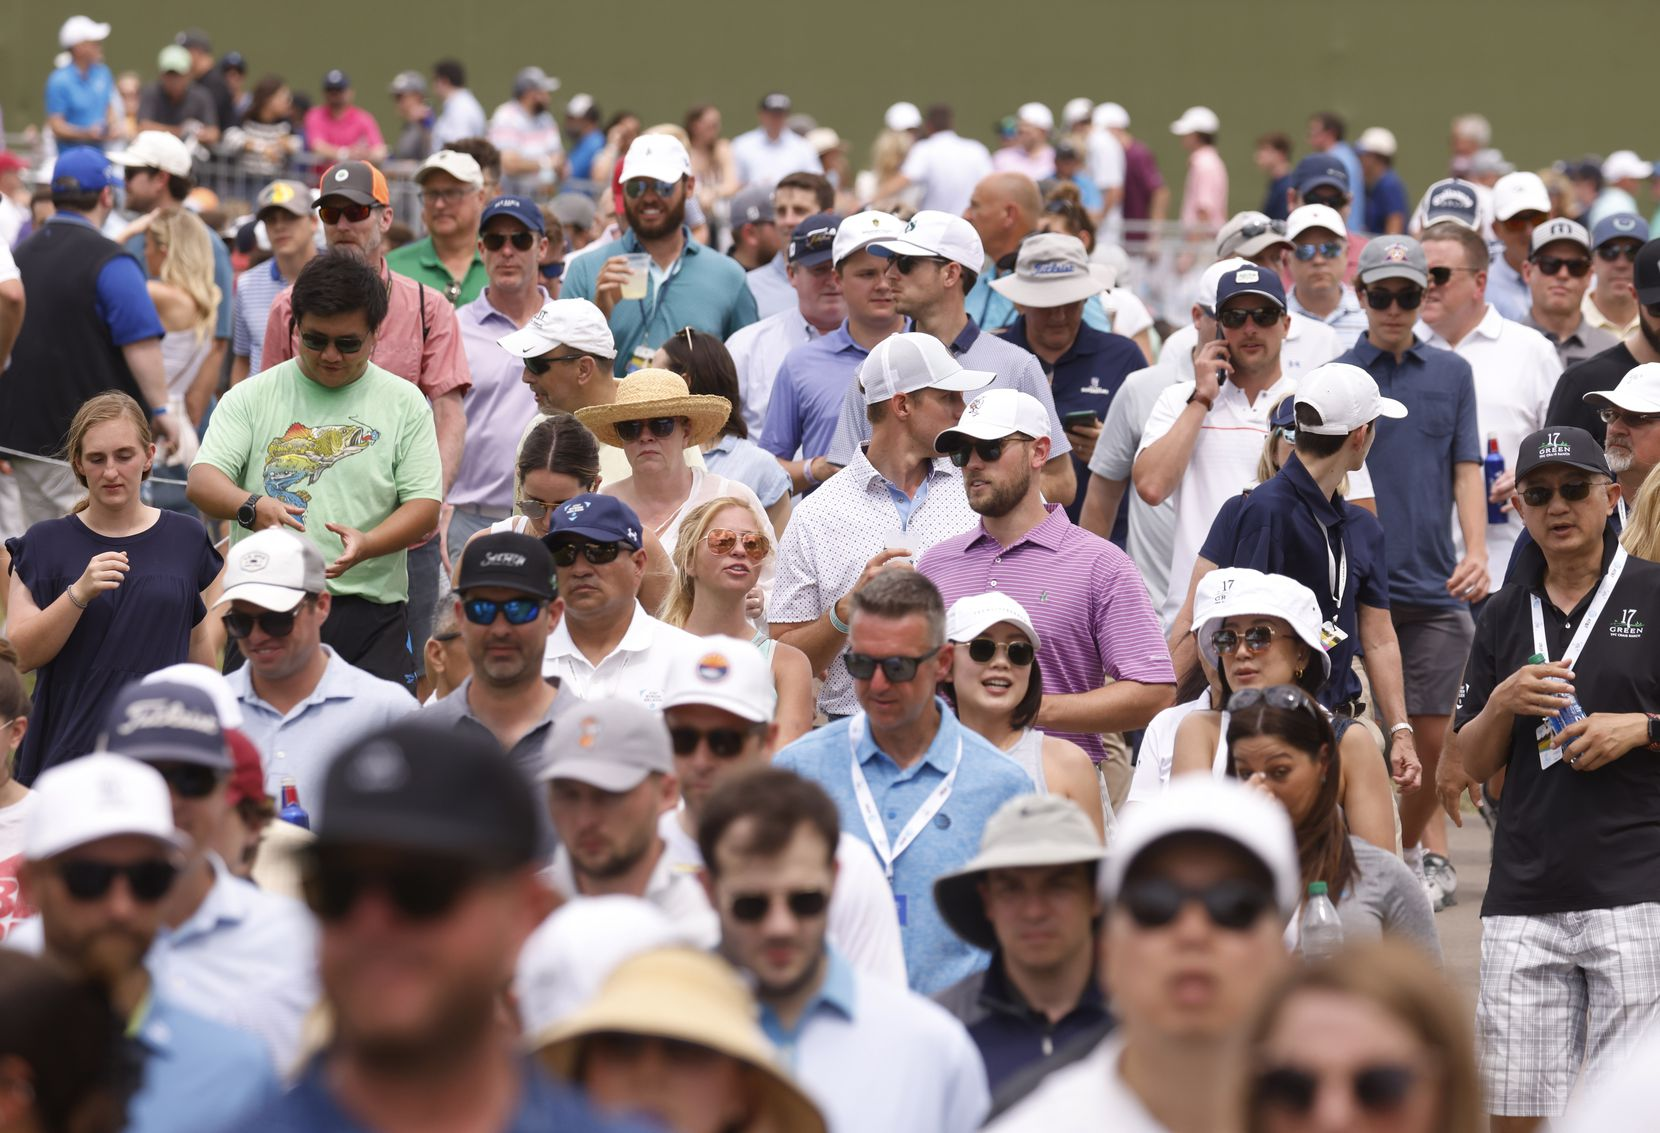 Fans make their way towards the green after watching Jordan Spieth tee off on the 13th hole during round 3 of the AT&T Byron Nelson  at TPC Craig Ranch on Saturday, May 15, 2021 in McKinney, Texas. (Vernon Bryant/The Dallas Morning News)